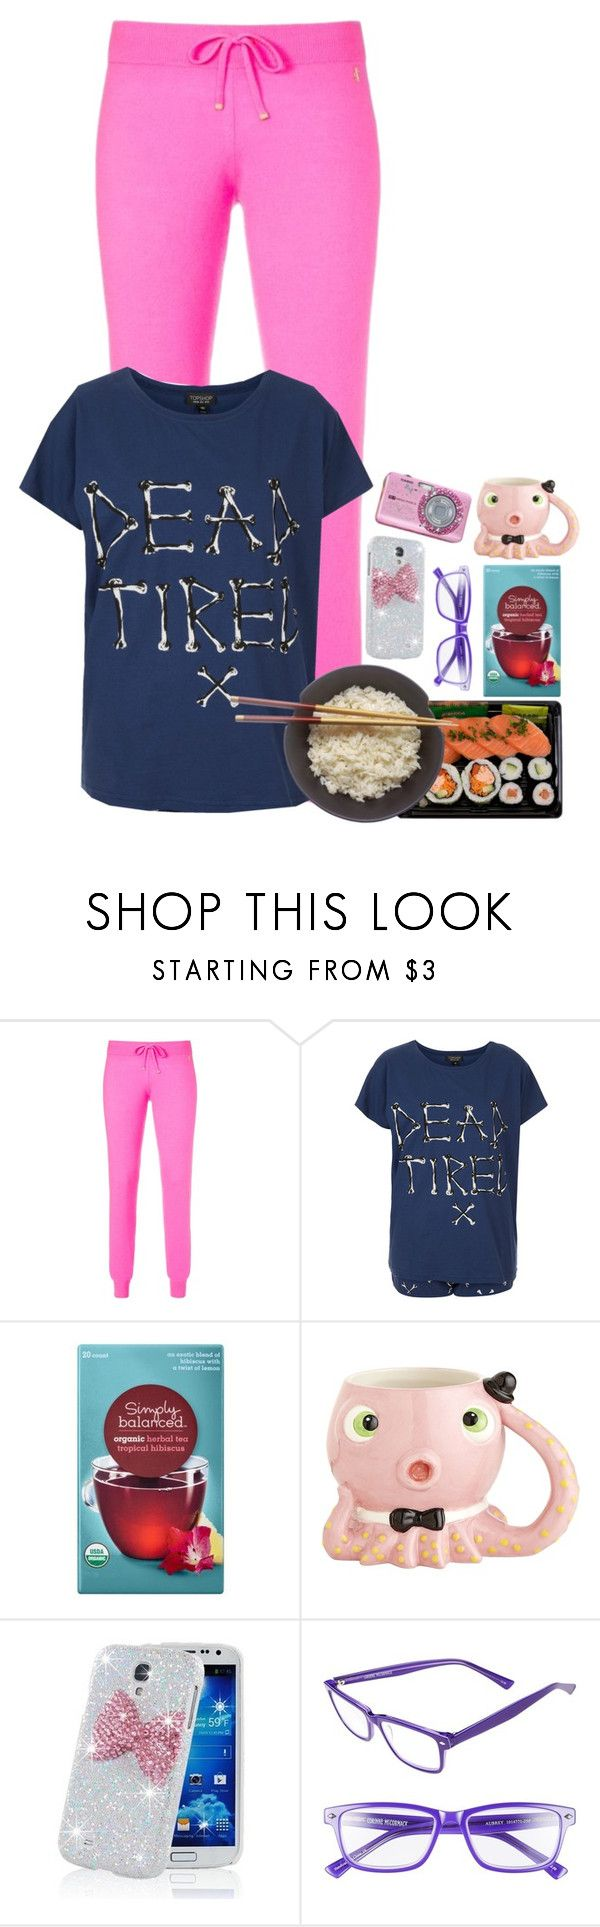 """sushi"" by emmzizleez888 ❤ liked on Polyvore featuring Juicy Couture, Topshop, Pier 1 Imports, Samsung, Hello Kitty, Corinne McCormack and vintage"